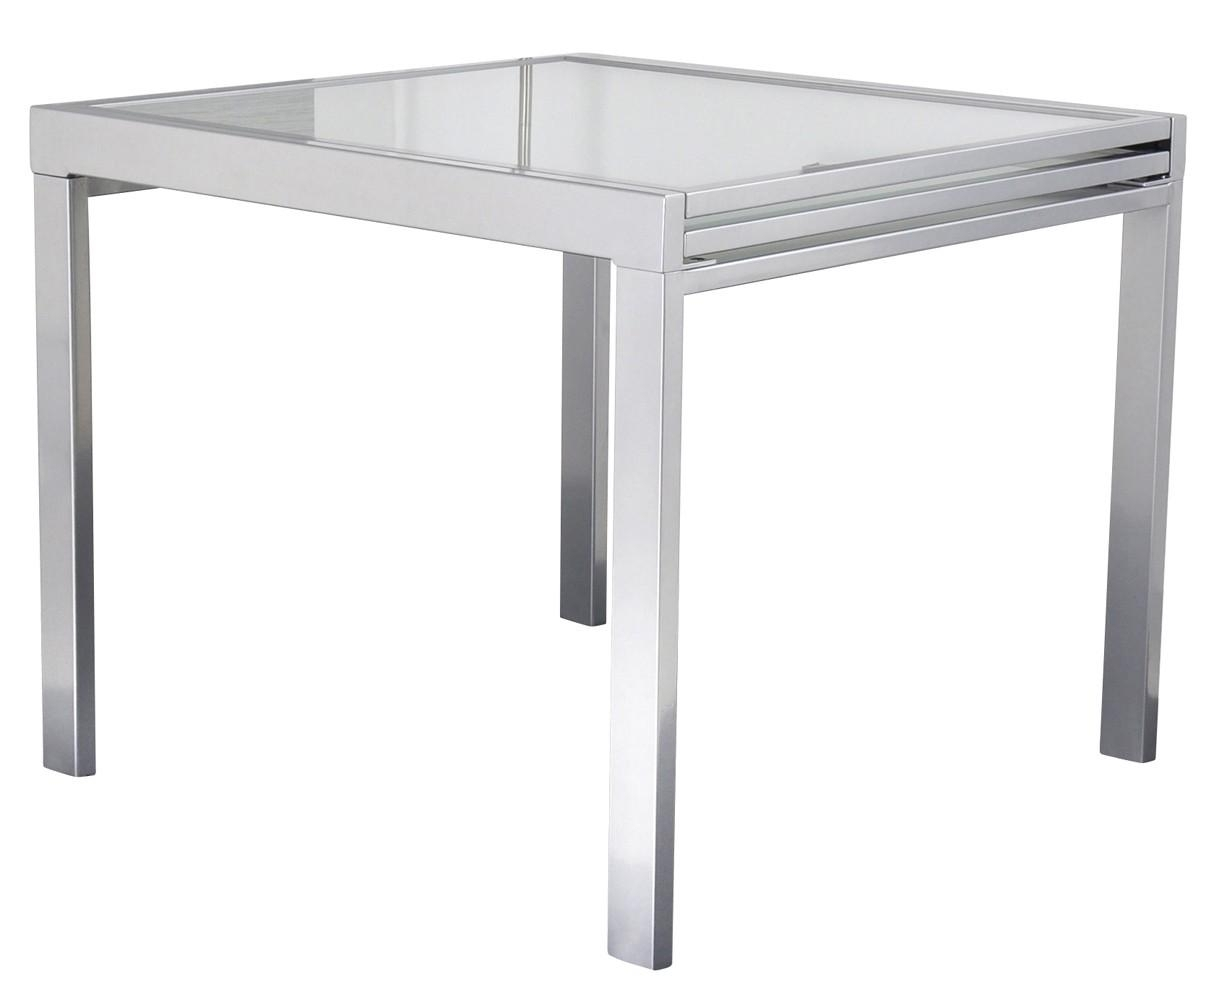 Les tendances table carr e extensible grise - Table extensible en verre ...